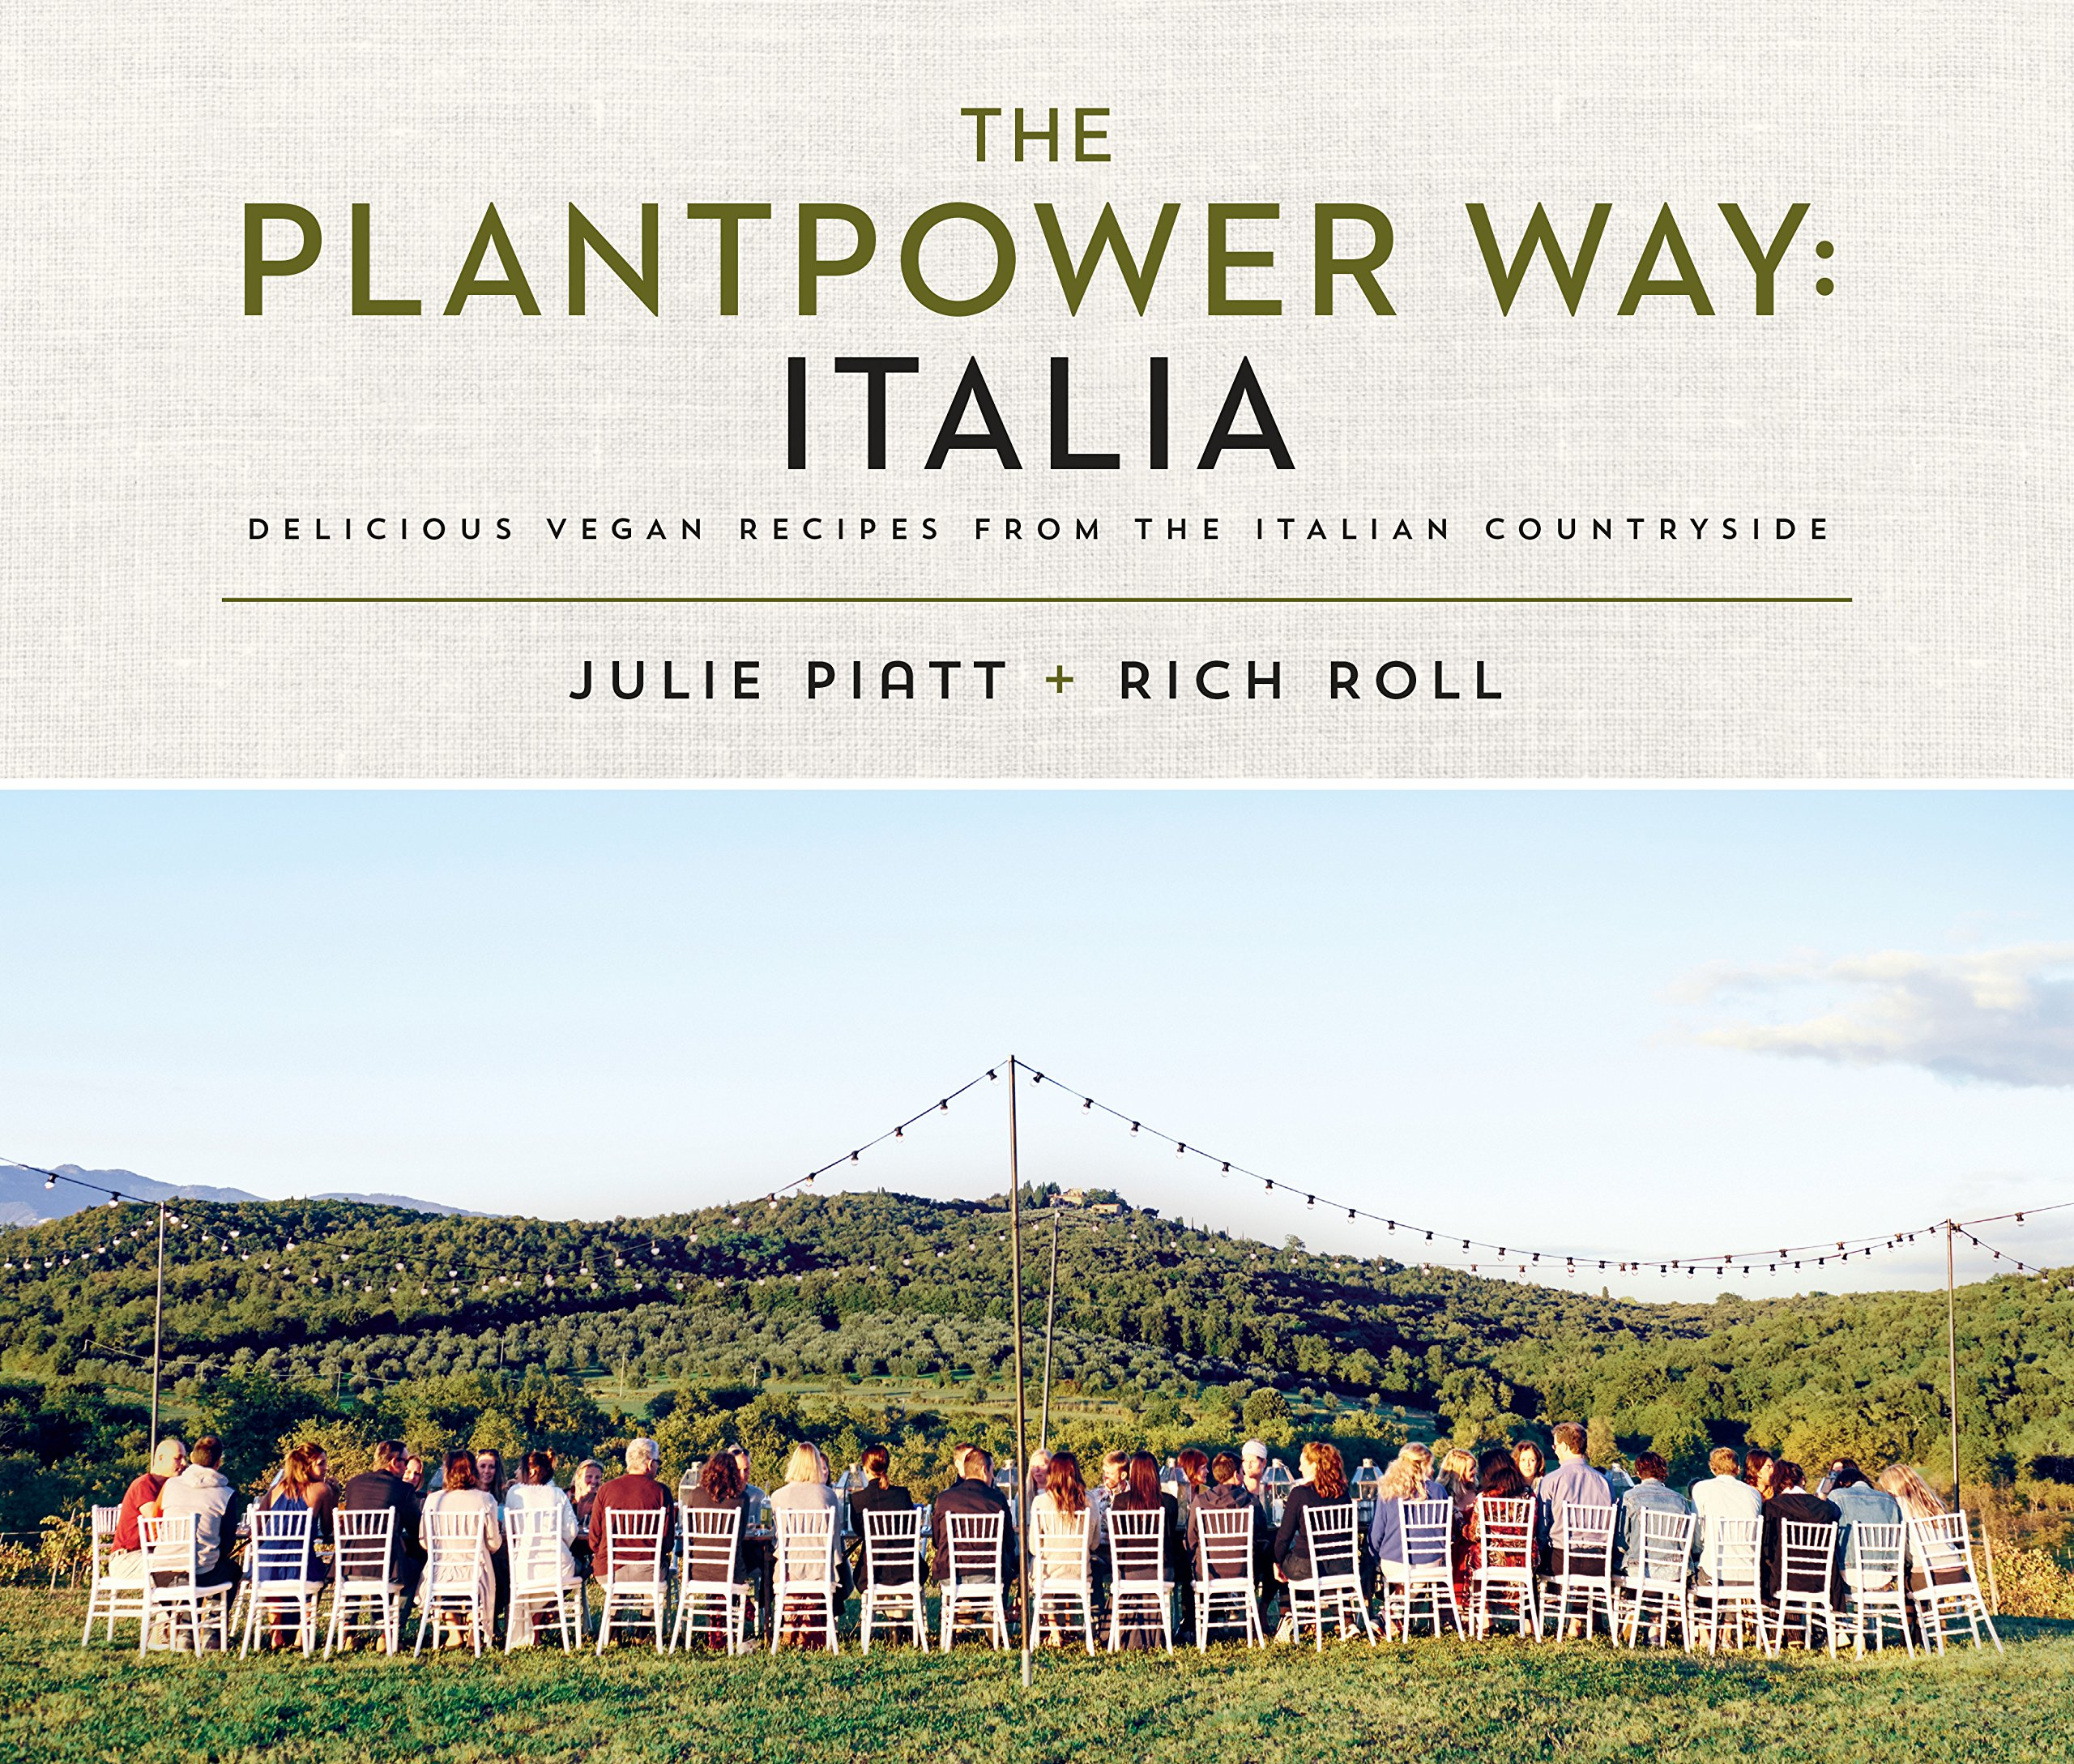 The Plantpower Way: Italia: Delicious Vegan Recipes from the Italian Countryside Hardcover by Rich Roll & Julie Piatt, $25 @amazon.com